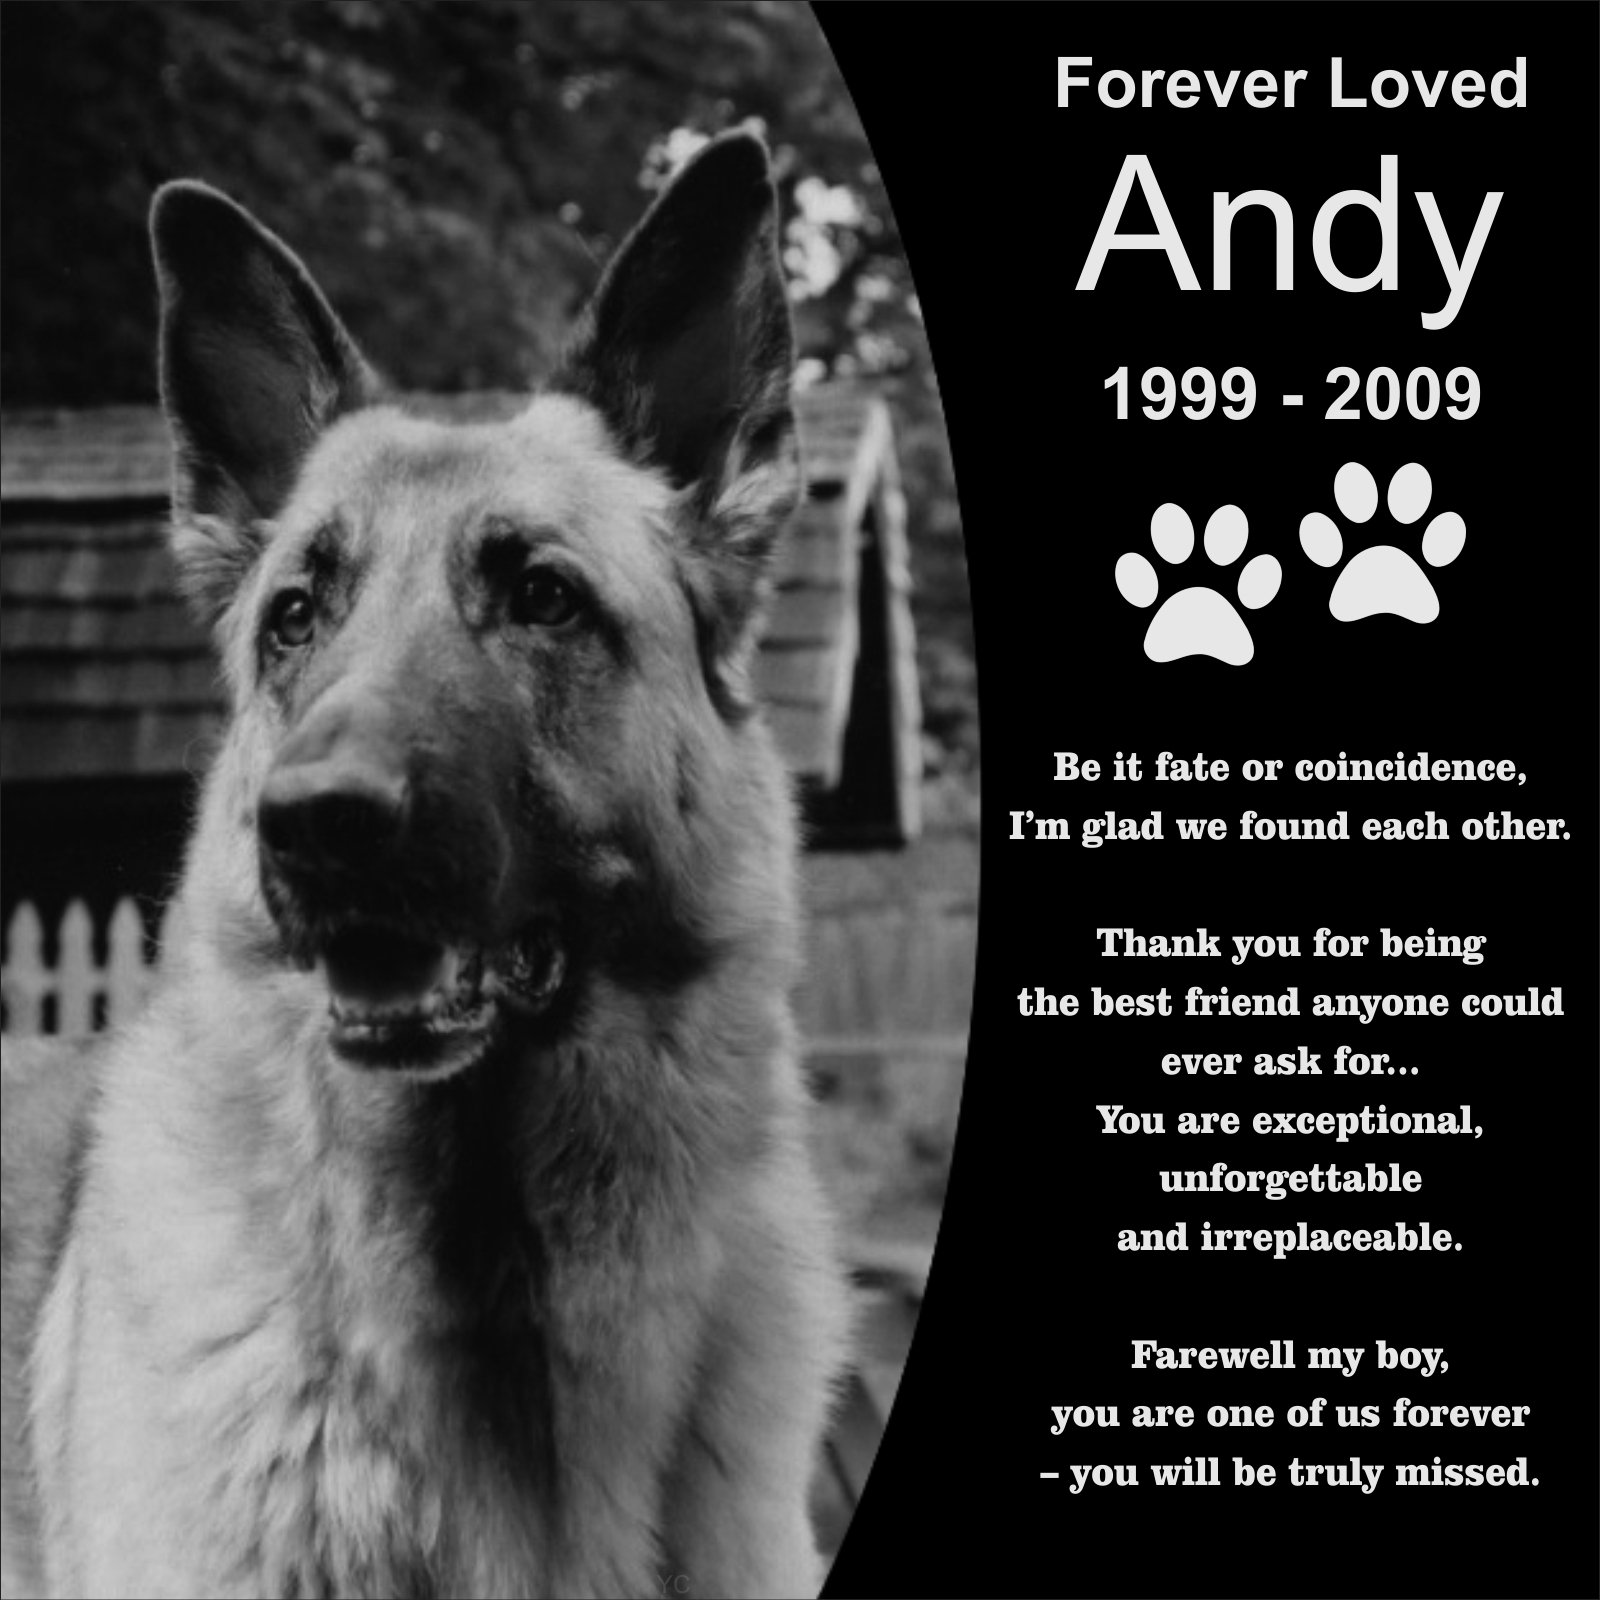 Personalized Pet Memorial 12''x12'' Engraved Black Granite Grave Marker Head Stone Plaque for Dog Cat All Pets BreedsAND2